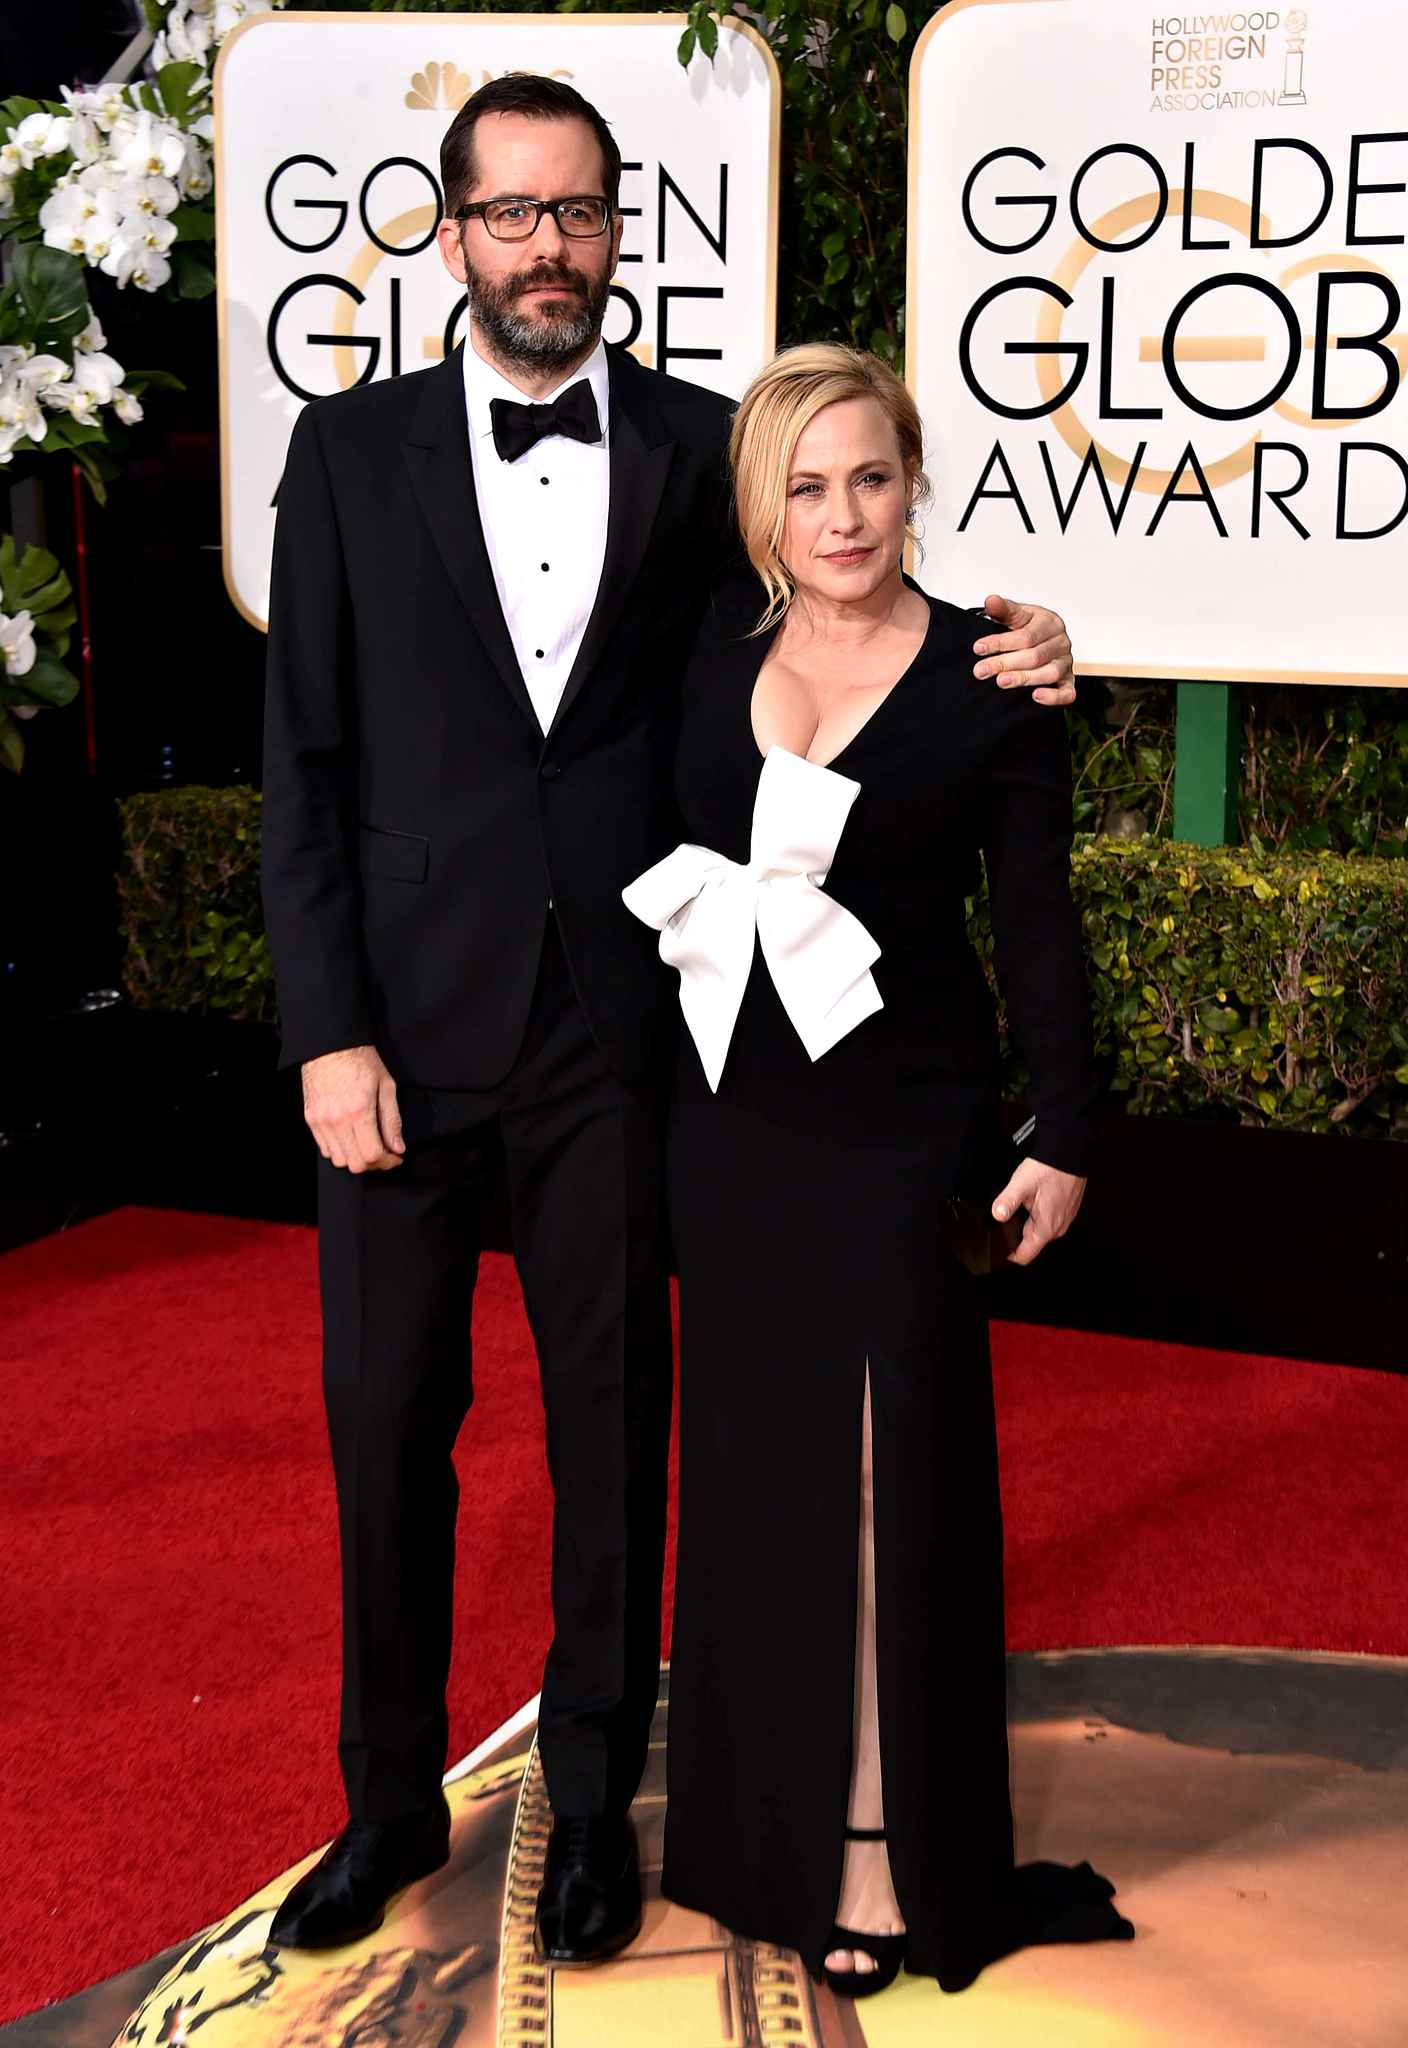 Golden Globe Awards 2016- What Not To Wear!